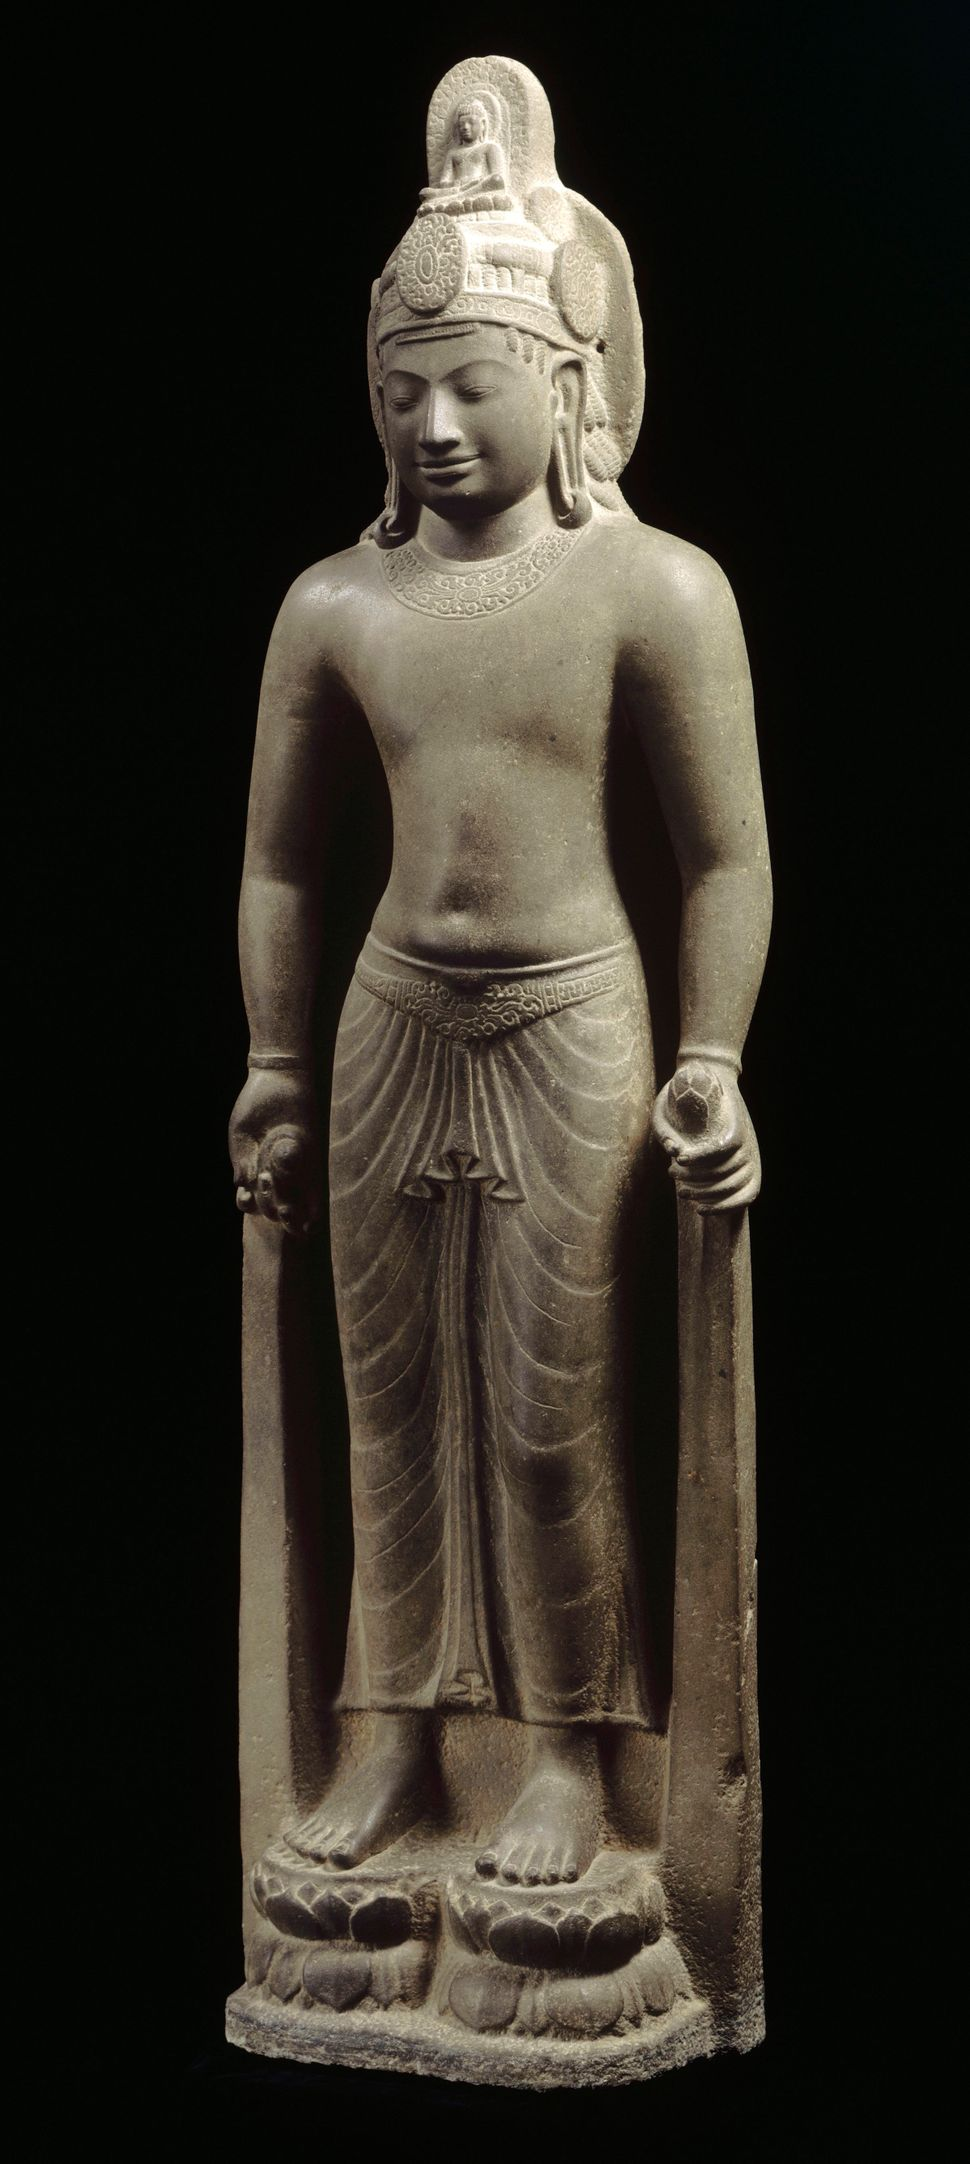 Bodhisattva Avalokiteshvara, Sandstone, Lent by Musée National des Arts Asiatiques–Guimet, Paris, Photo: © RMN-Grand Palais